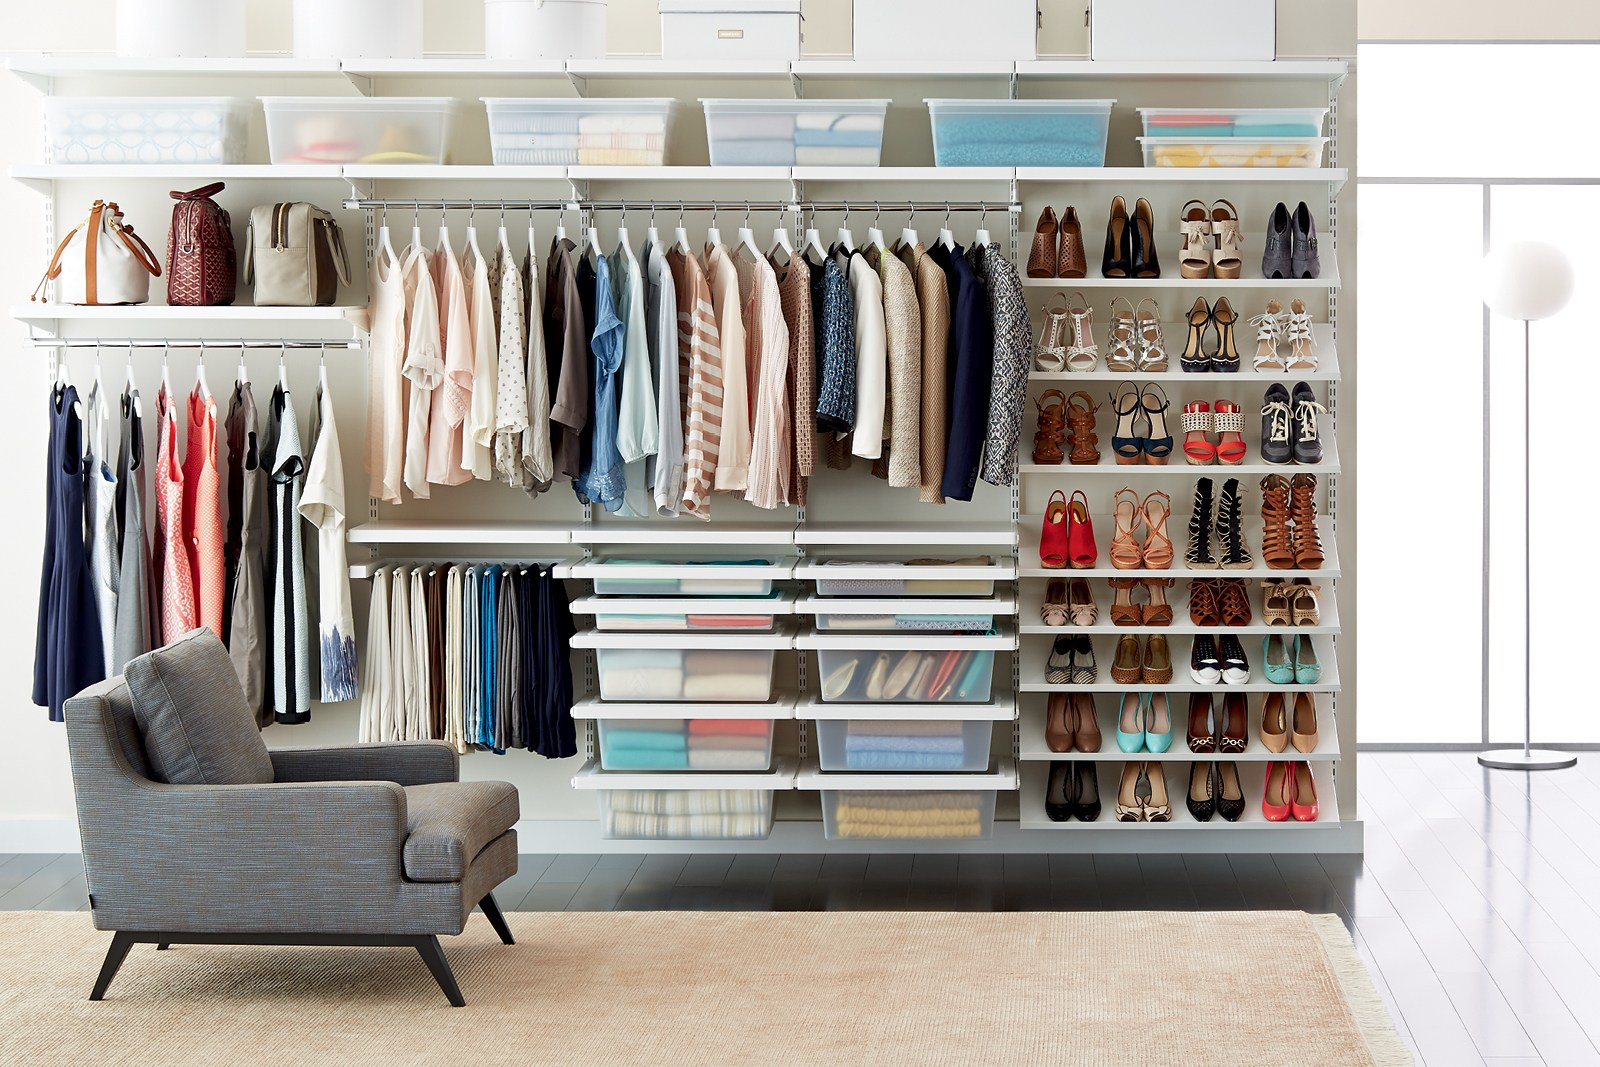 Cool Blog Post Closet Storage Ideas How To Organize Your Closet  Container Store Closet Organizer Ideas Small Closets Closet Organizer Ideas Home Depotu2013  ...